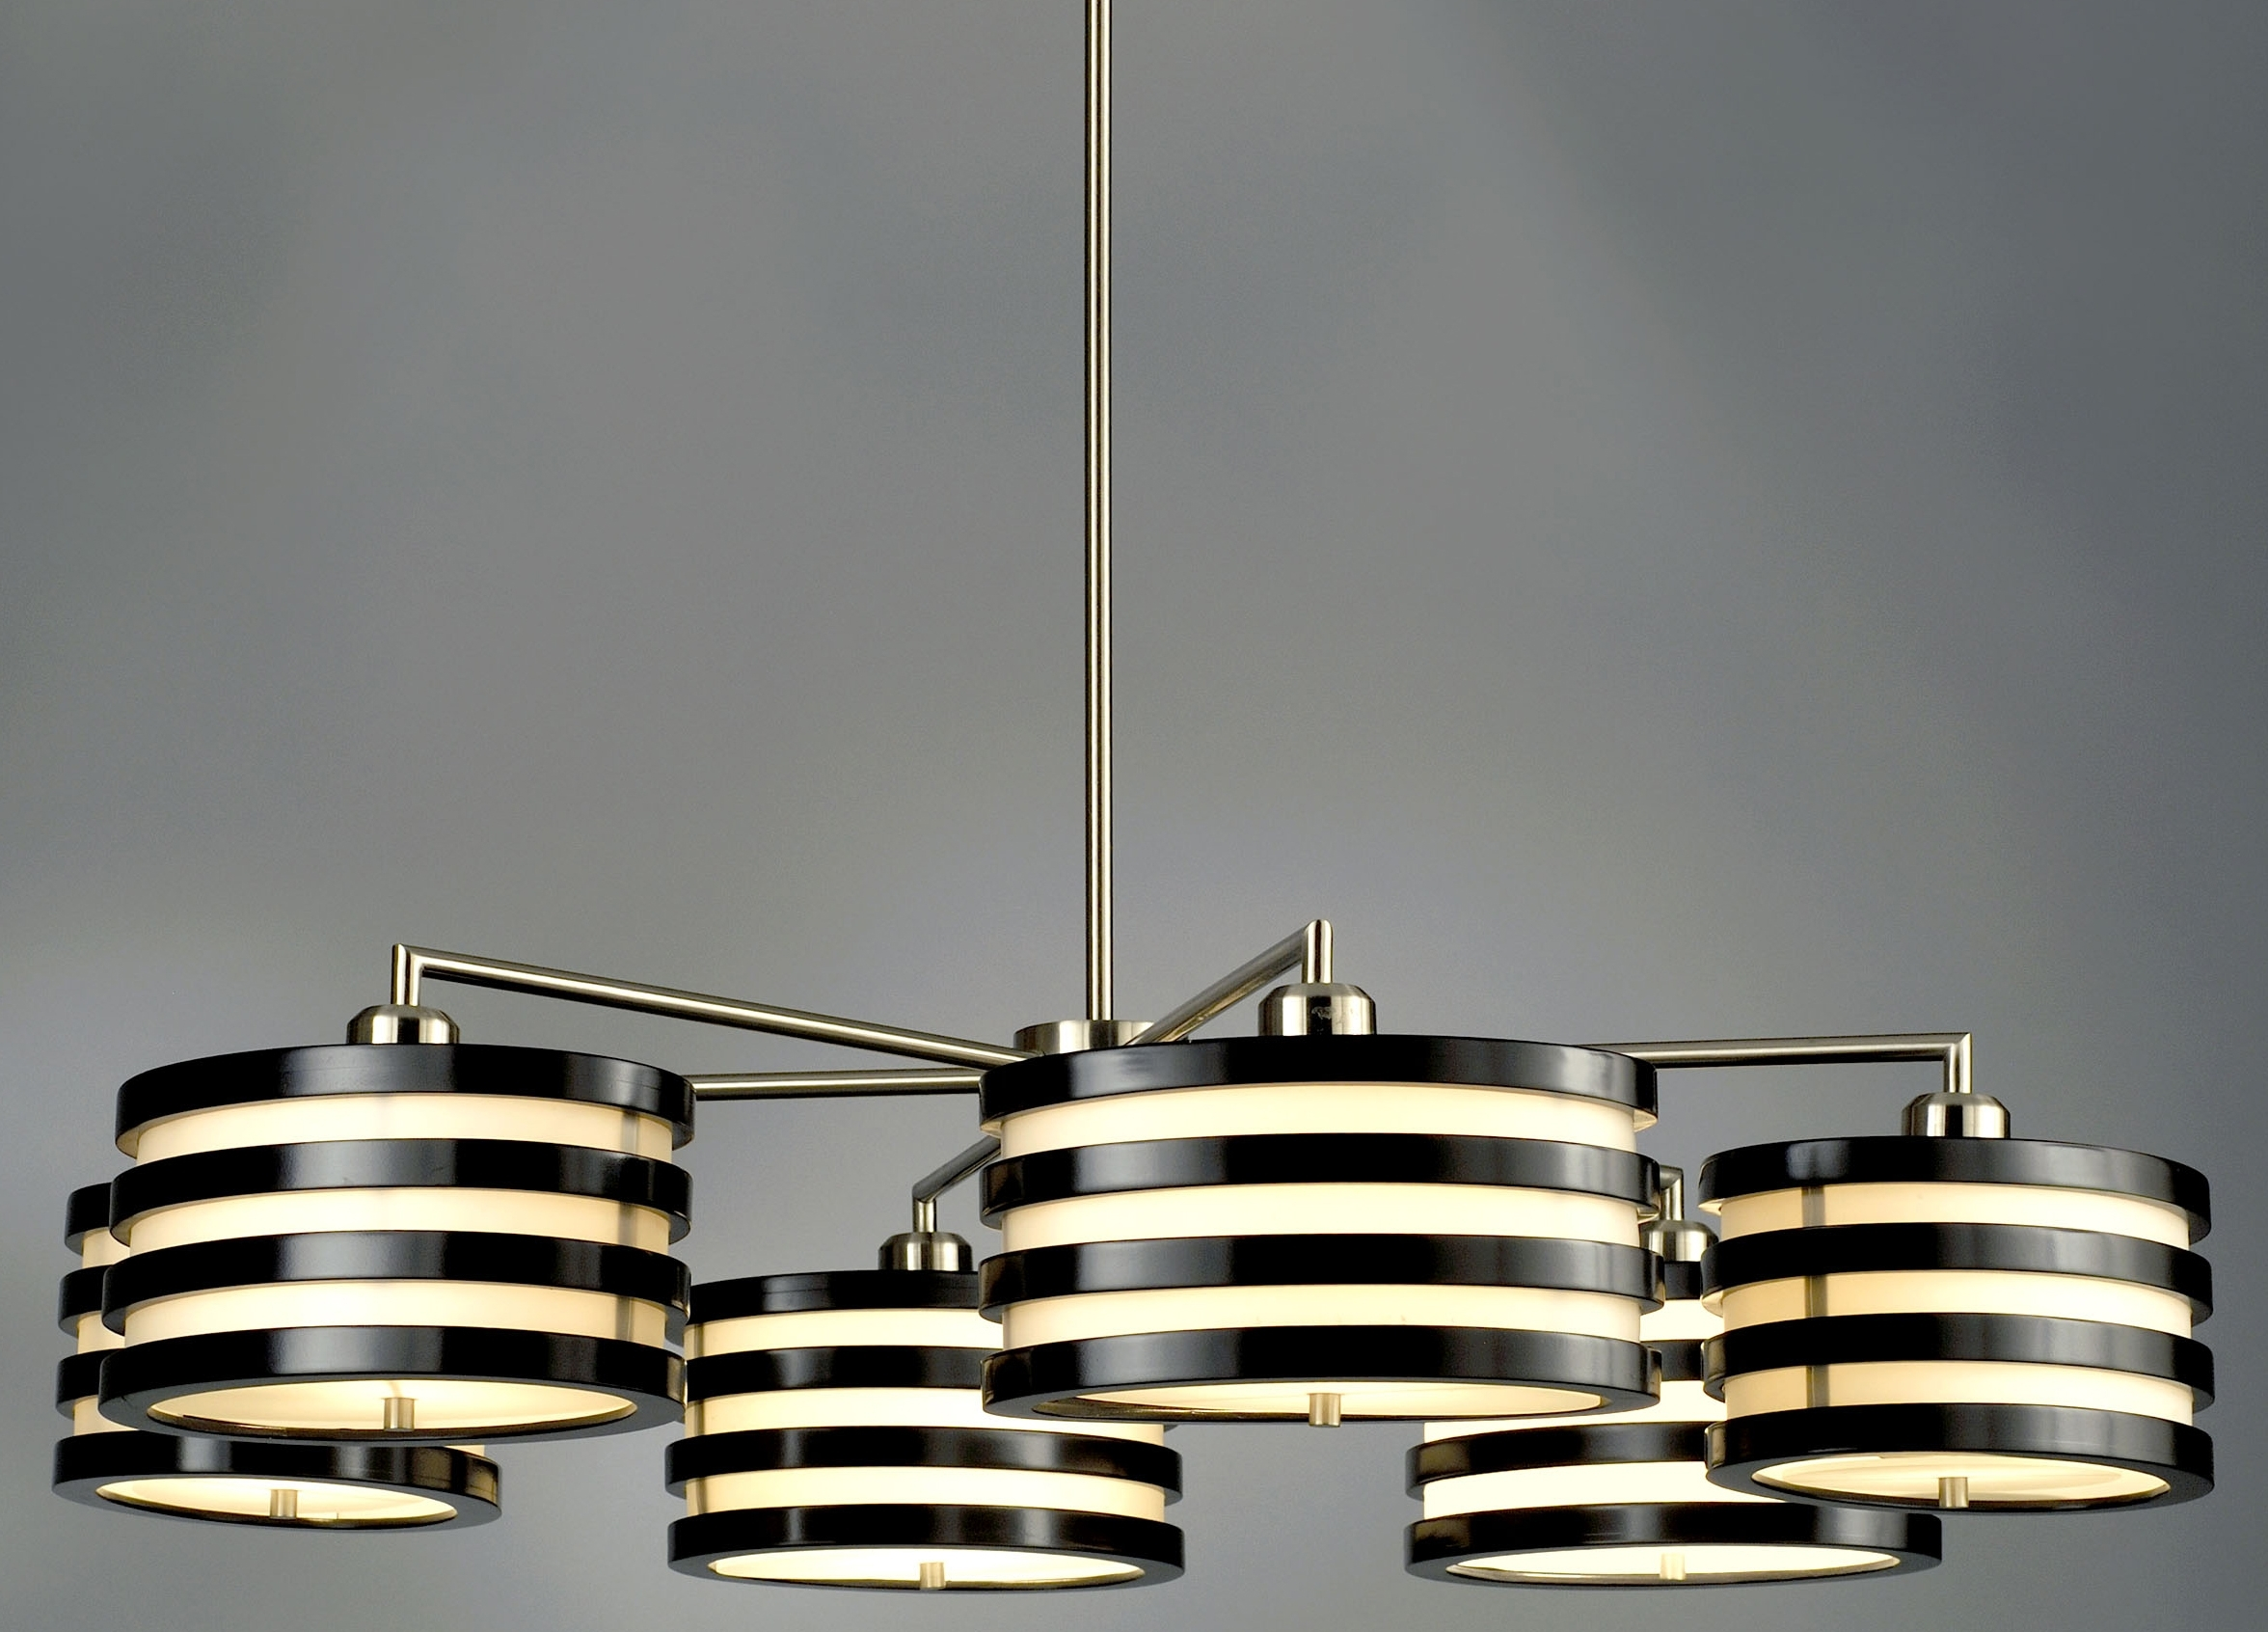 Contemporary Chandeliers For Most Recent Home Decor + Home Lighting Blog » Blog Archive » Nova Lighting Kobe (View 14 of 15)